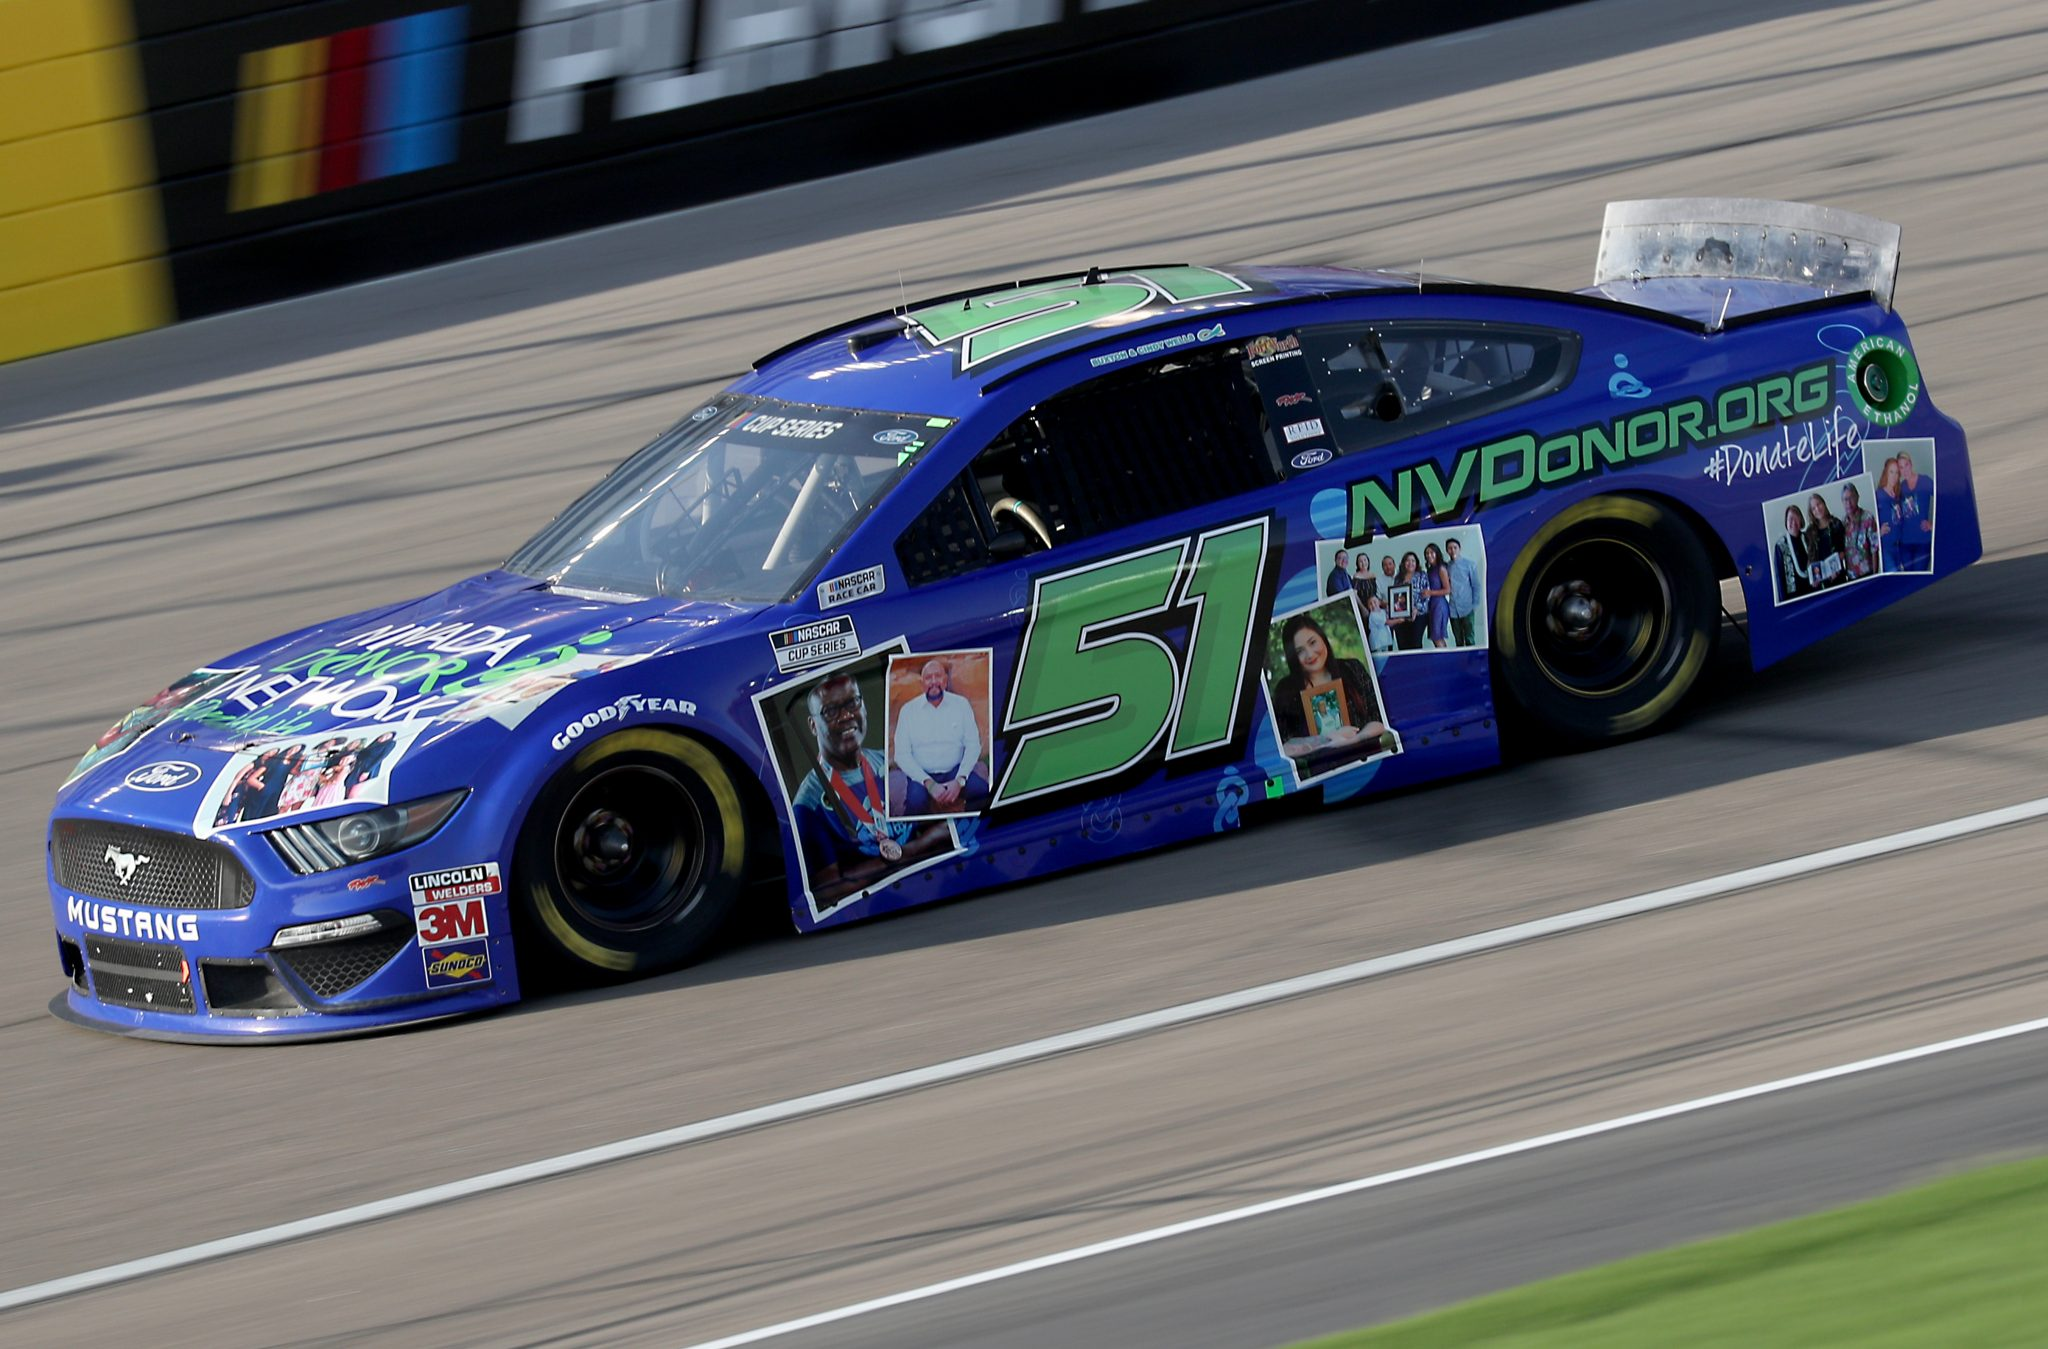 LAS VEGAS, NEVADA - SEPTEMBER 27: Joey Gase, driver of the #51 Nevada Donate Life Ford, drives during the NASCAR Cup Series South Point 400 at Las Vegas Motor Speedway on September 27, 2020 in Las Vegas, Nevada. (Photo by Chris Graythen/Getty Images) | Getty Images